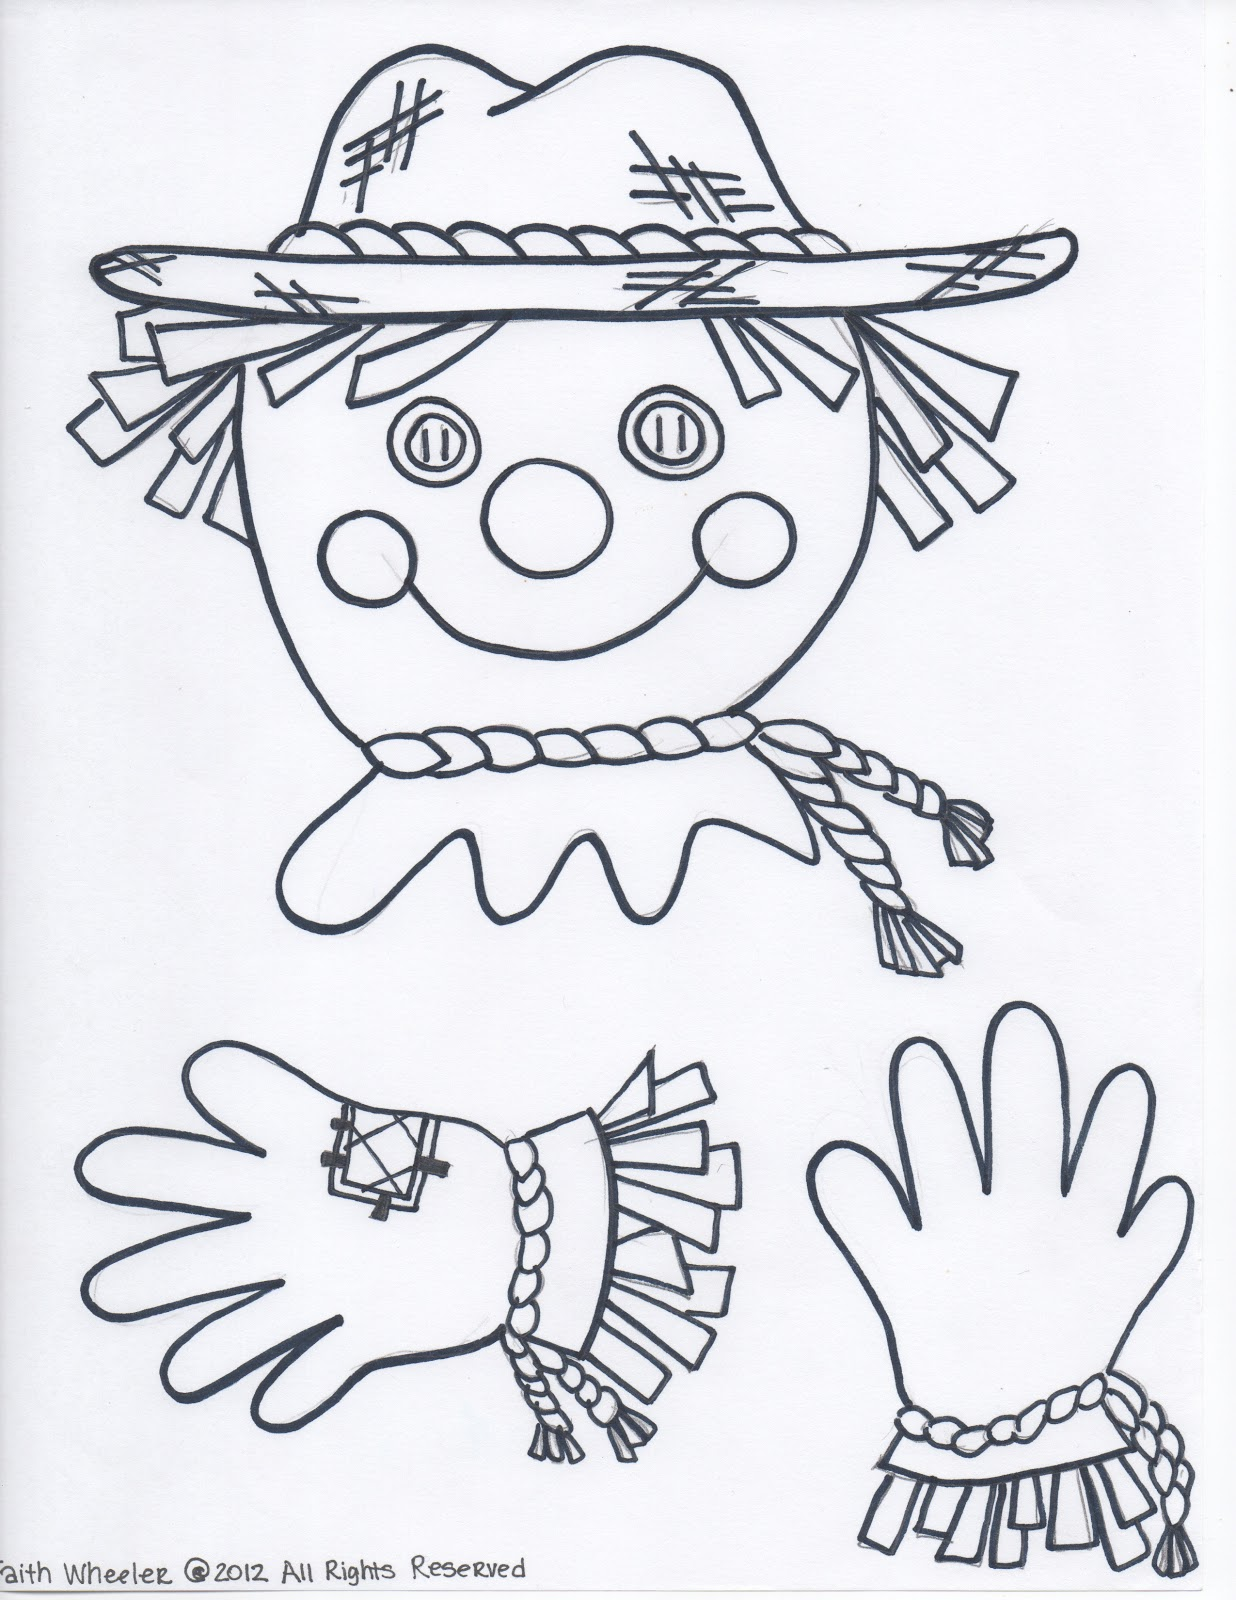 Fabulous image intended for scarecrow pattern printable